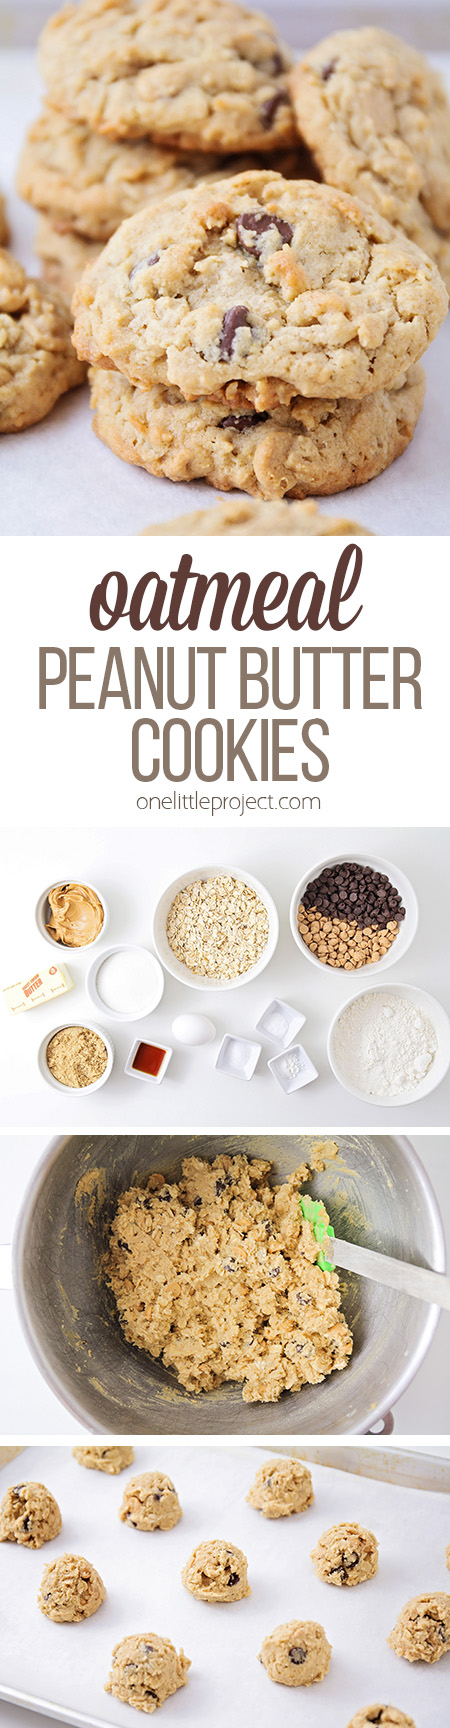 These chewy and sweet oatmeal peanut butter cookies are some of the most delicious cookies you will ever make! They're packed with peanut butter flavor!